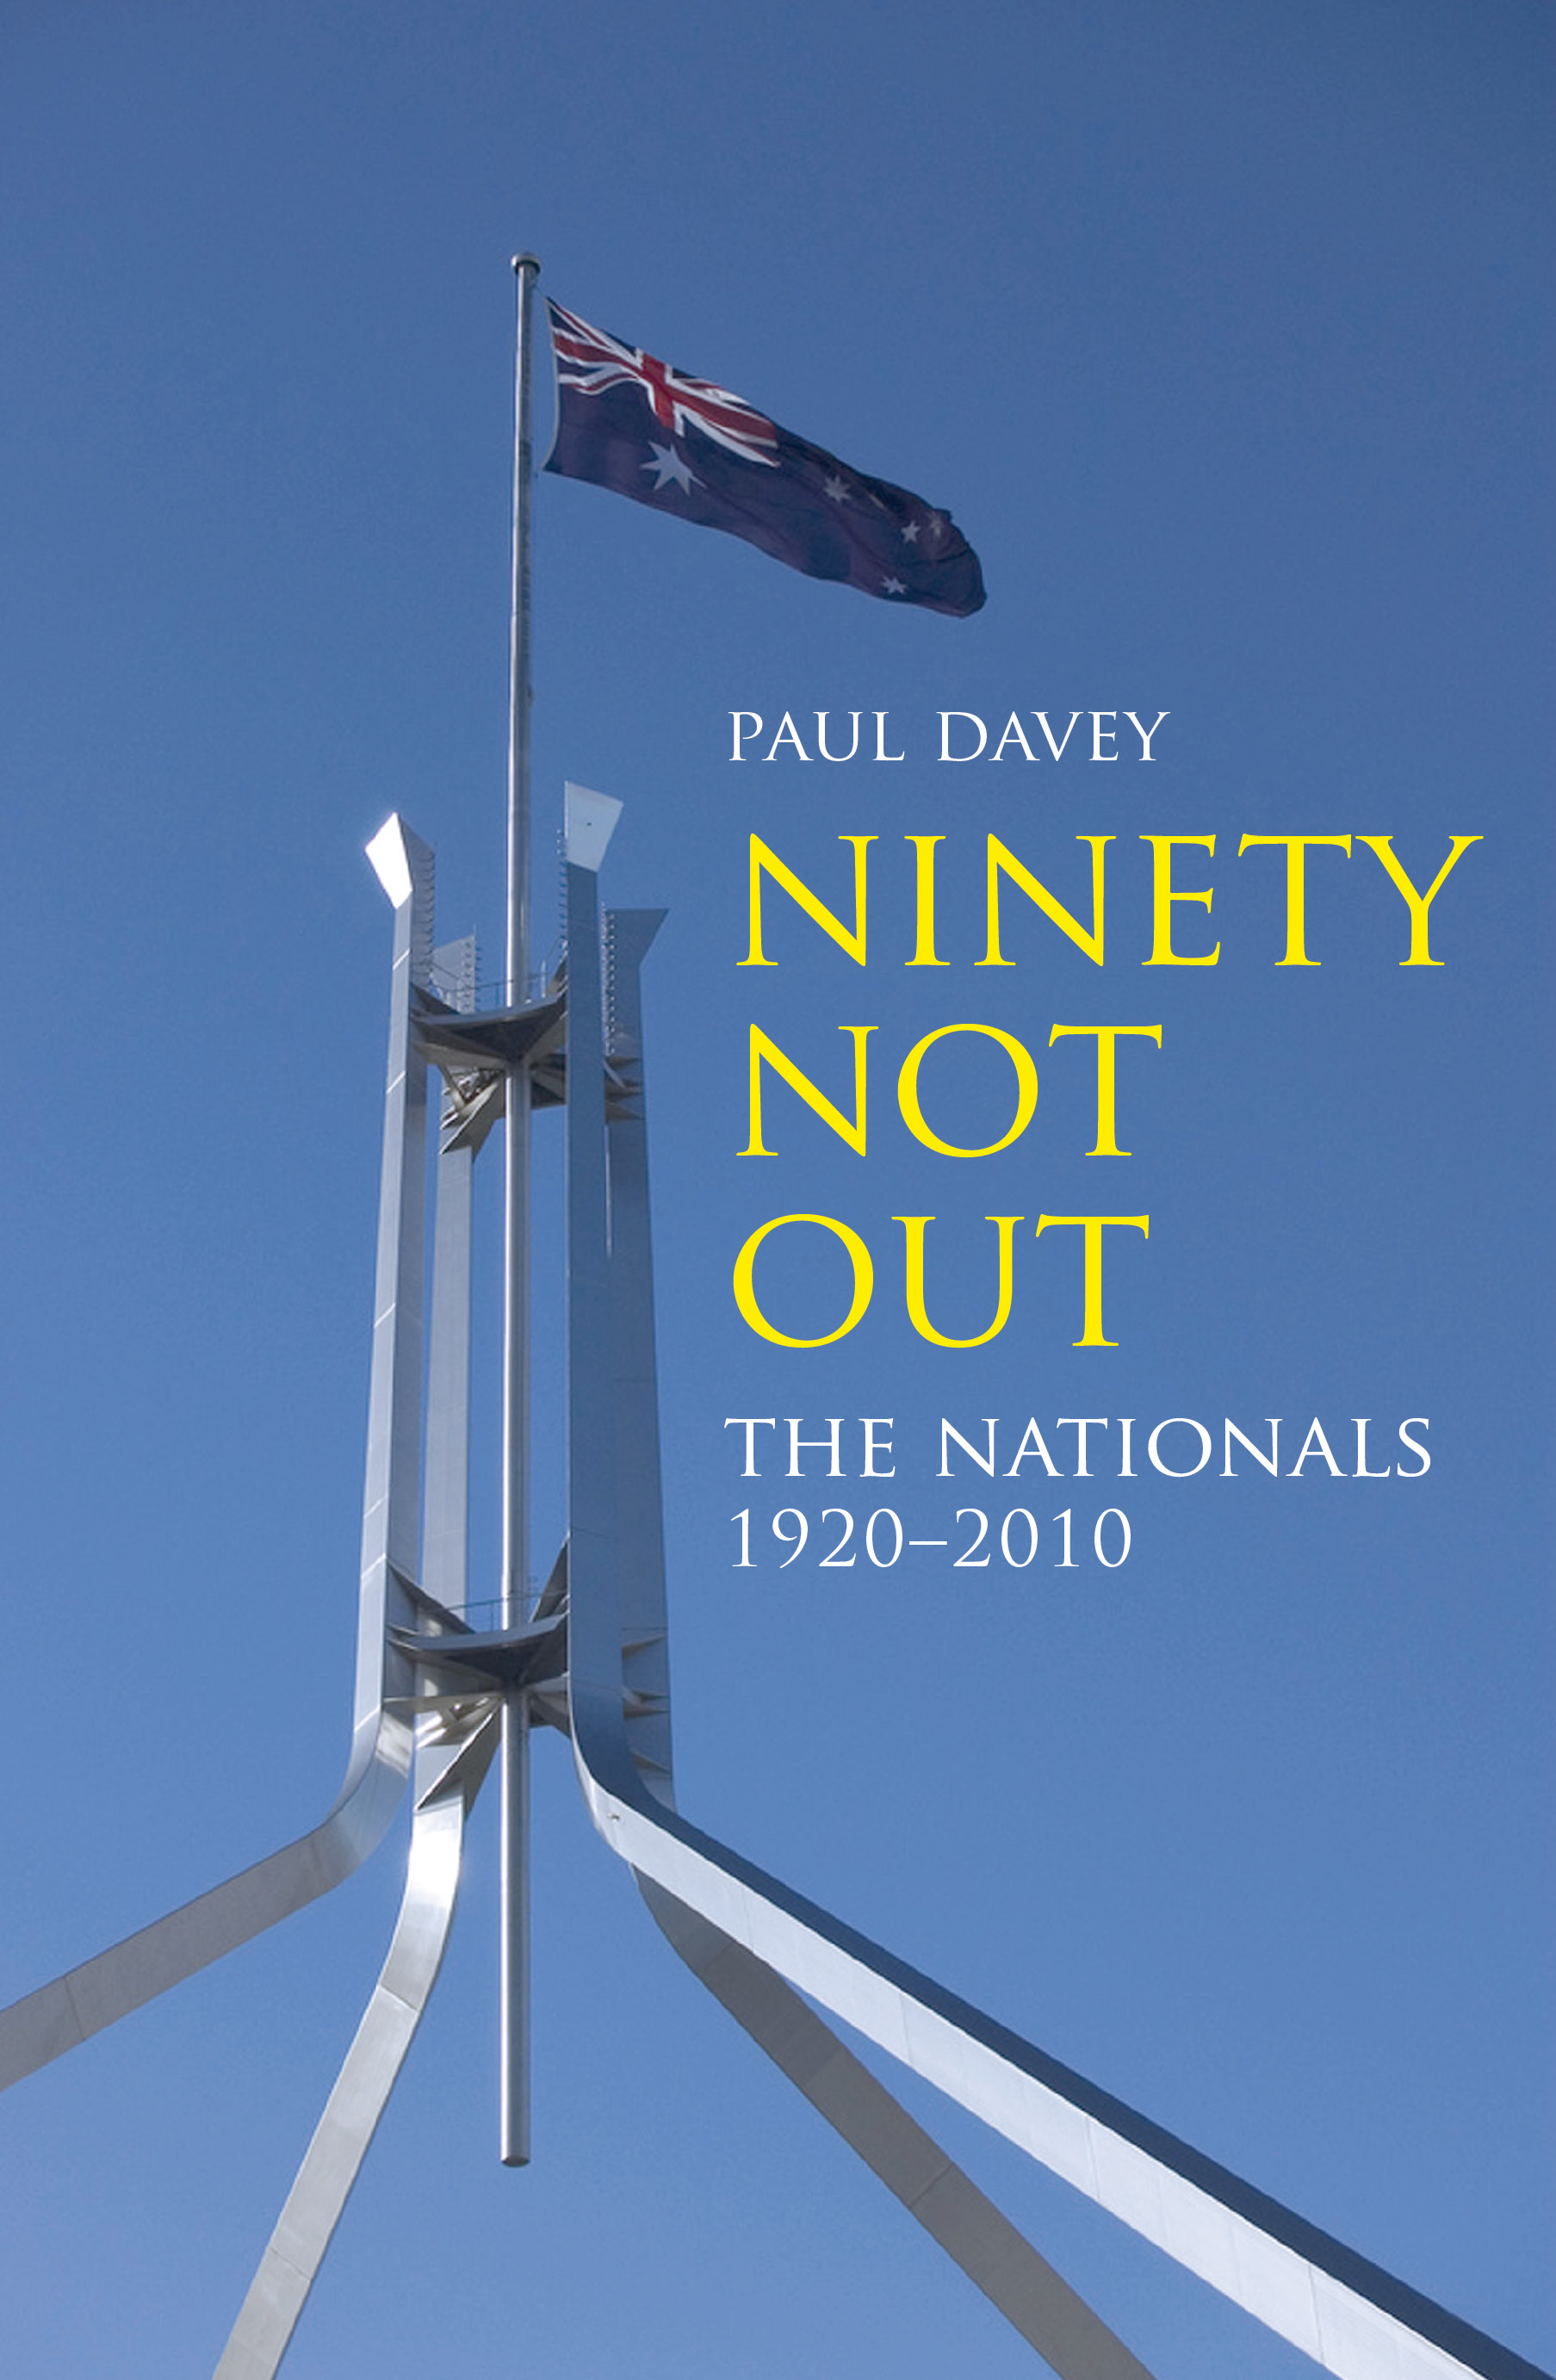 Ninety Not Out - The Nationals 1920-2010